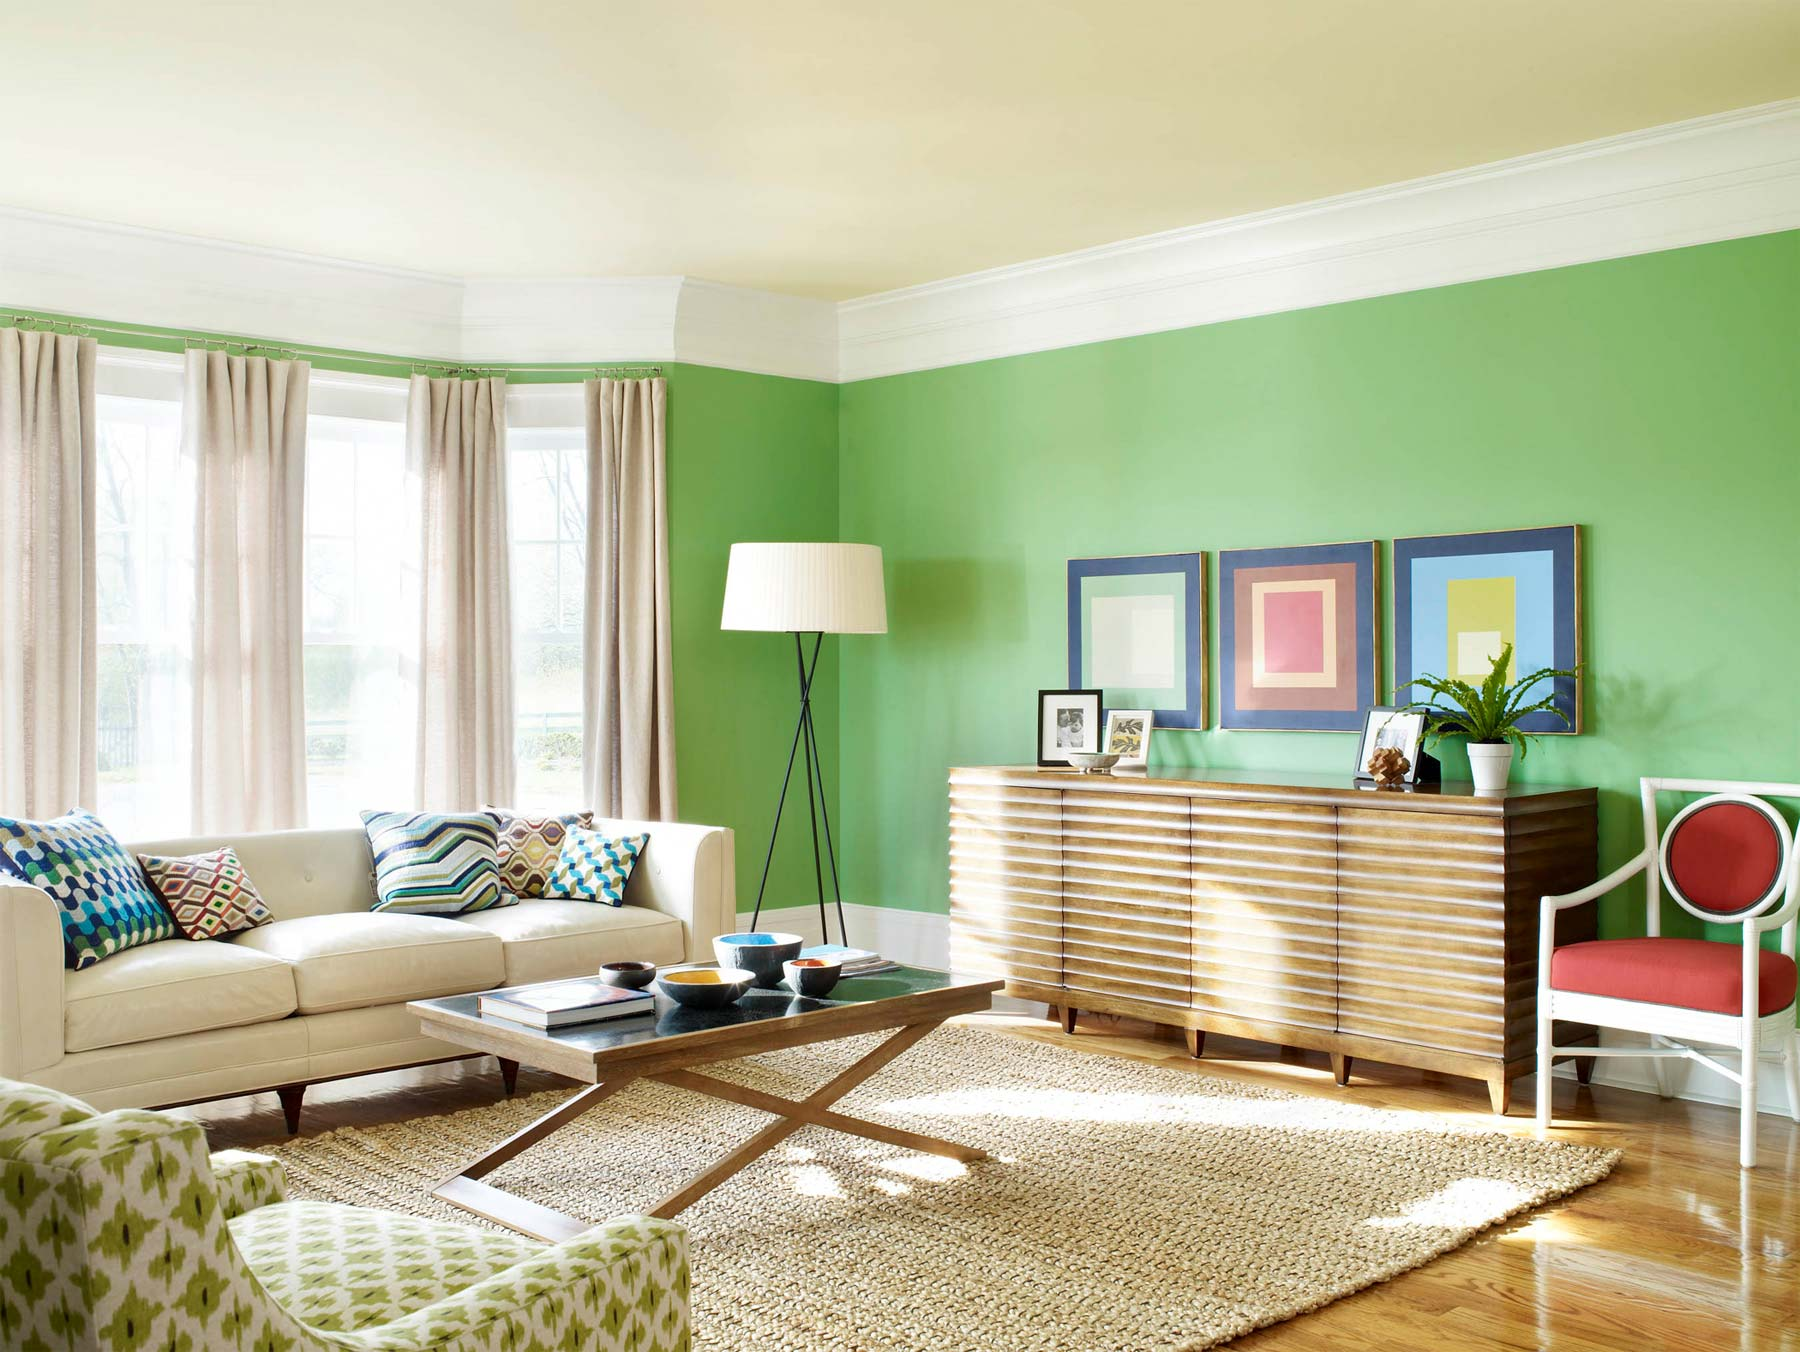 Living room colors paint home design scrappy for Colorful living room ideas with pictures